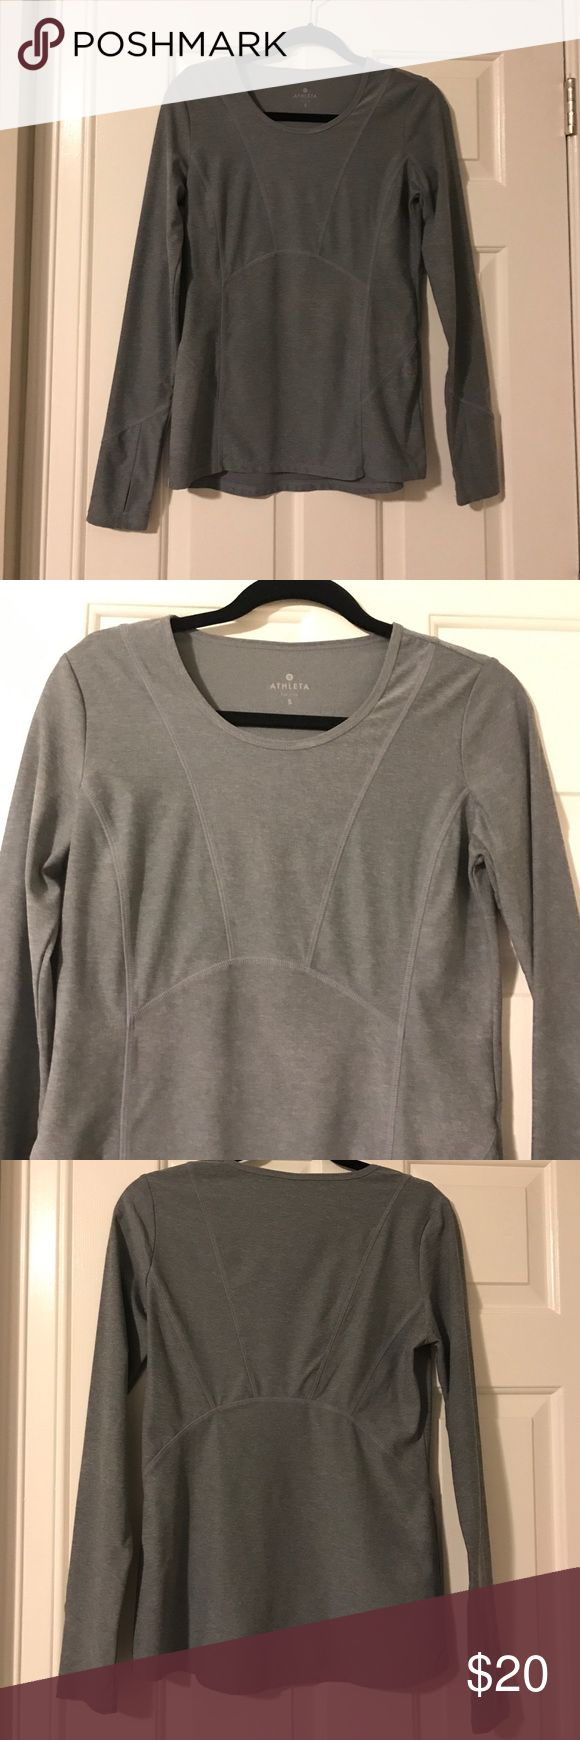 Athleta - Gray athletic casual top Gray athletic casual top with stitching- excellent condition - only worn a couple of times Athleta Tops